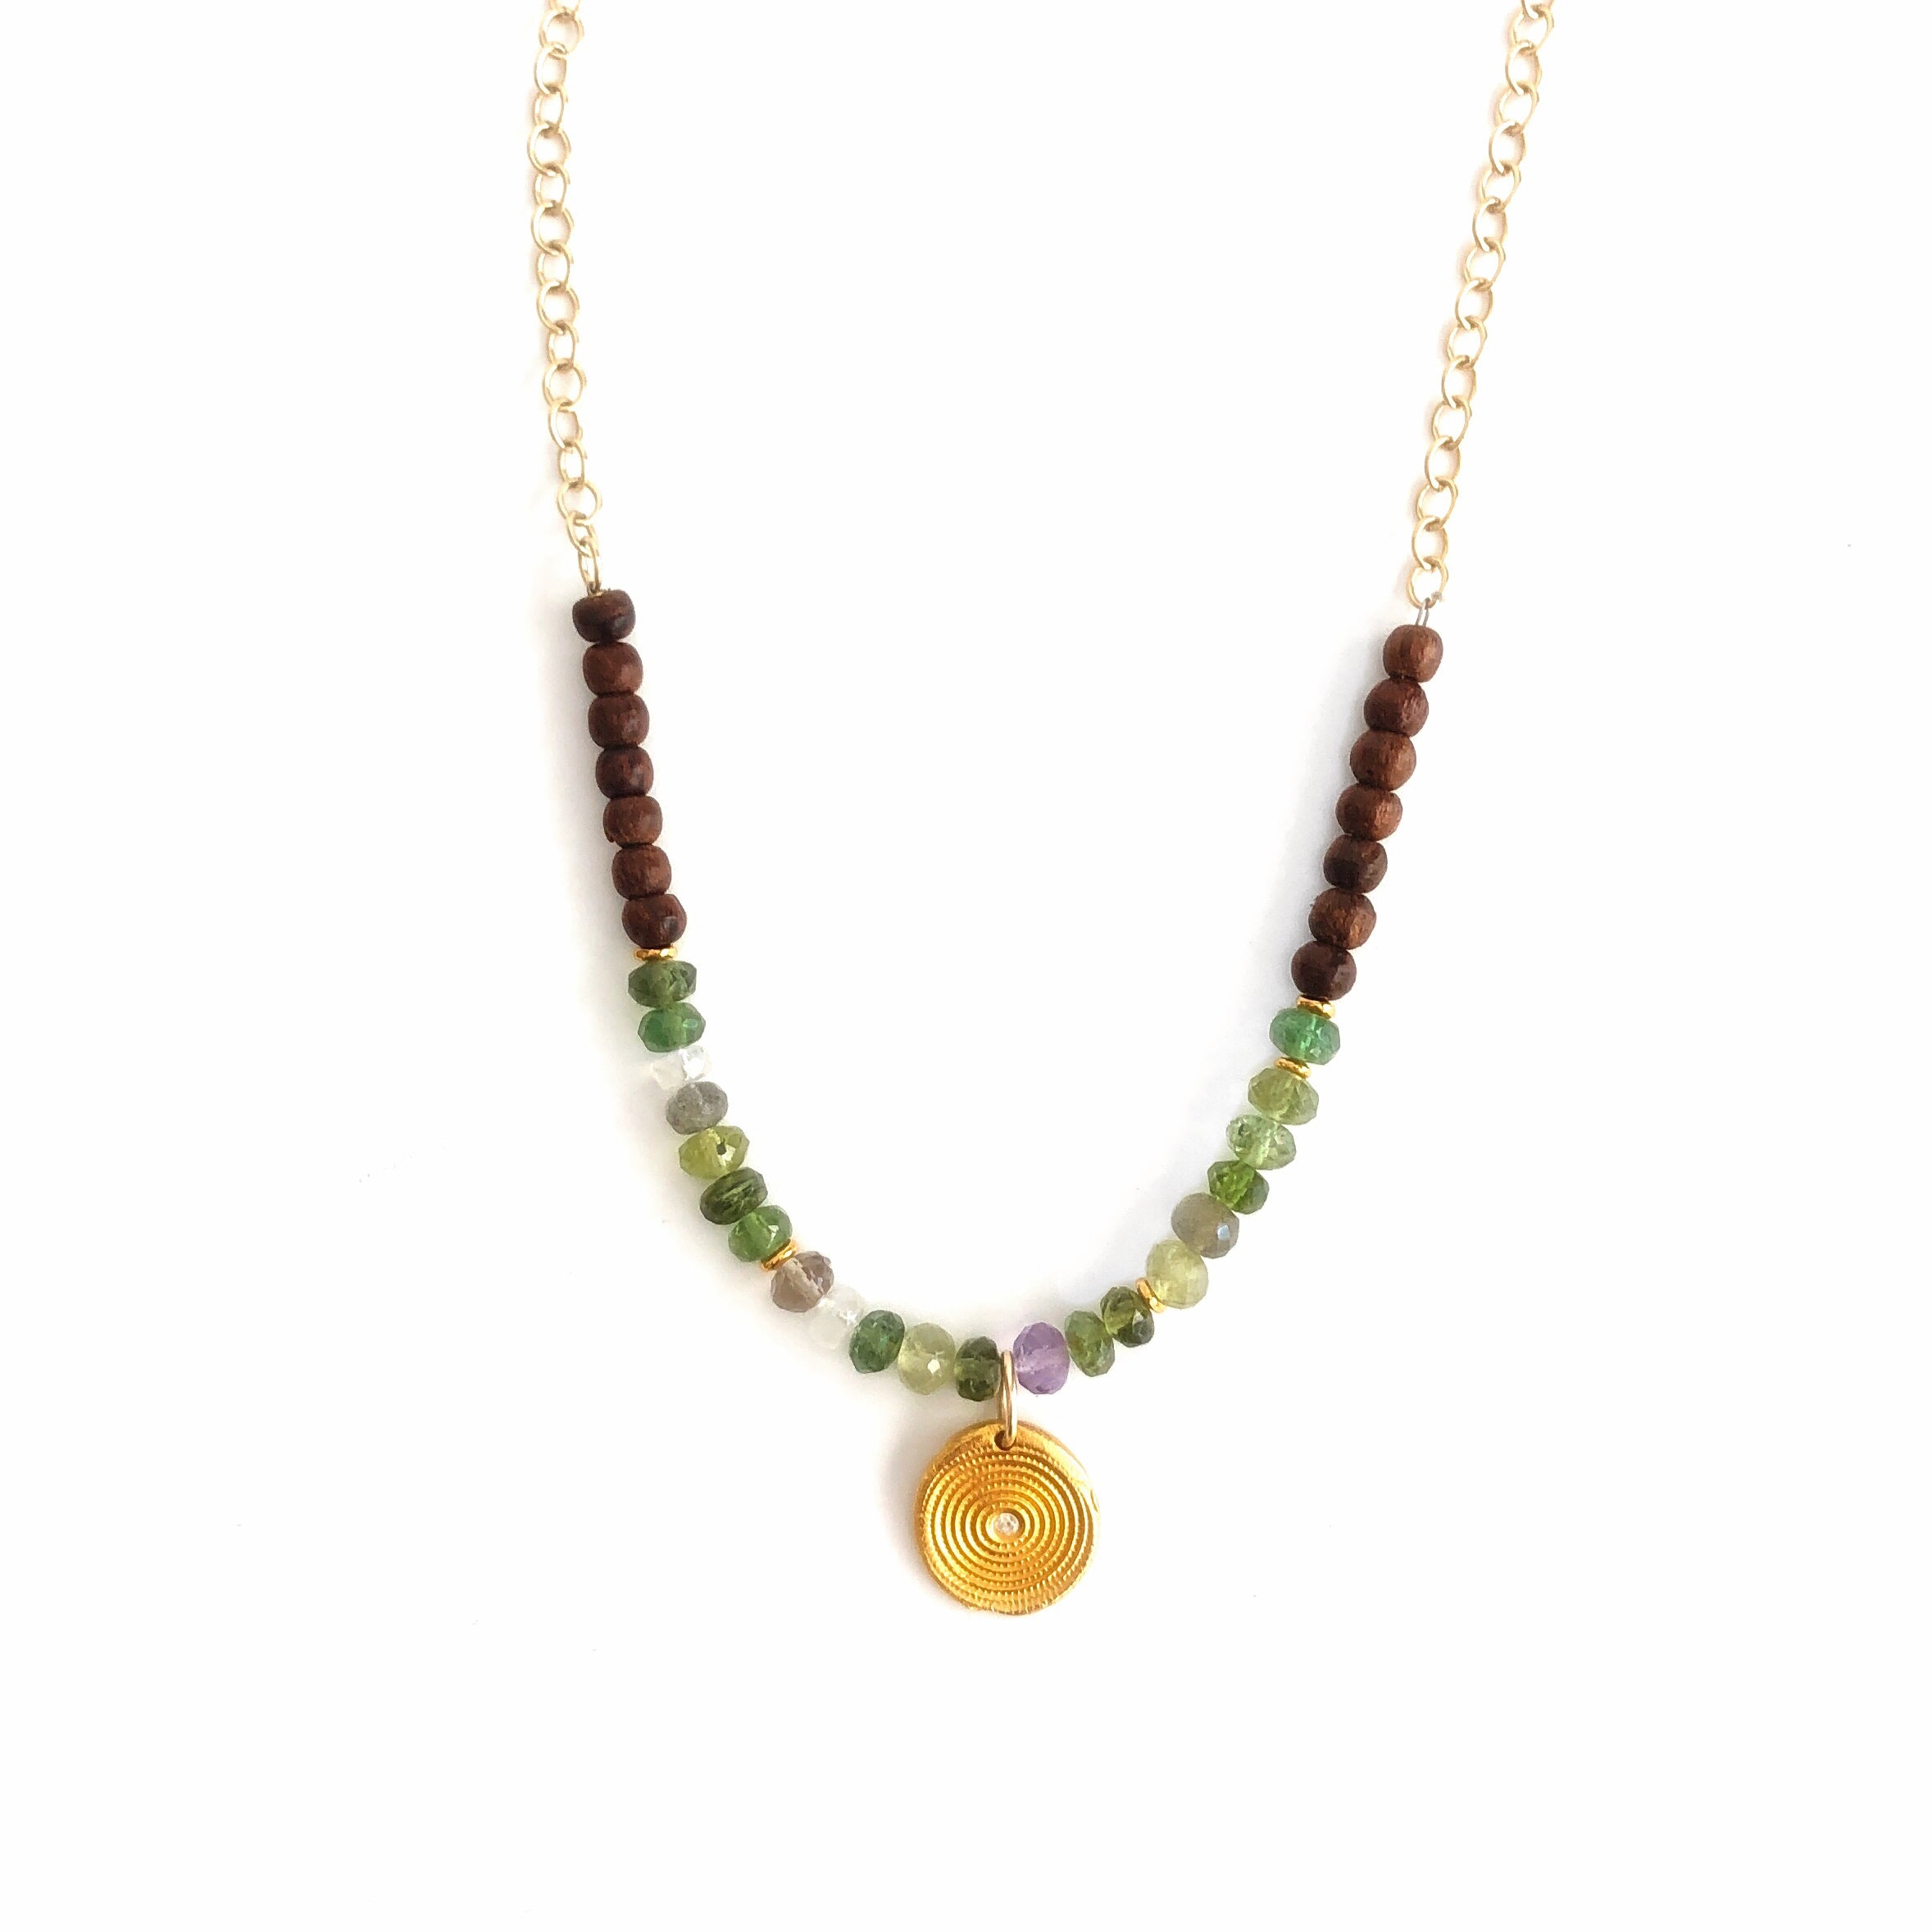 One Of A Kind Tourmaline and Wood Beaded Gold Zen Necklace 20039 - MAS Designs